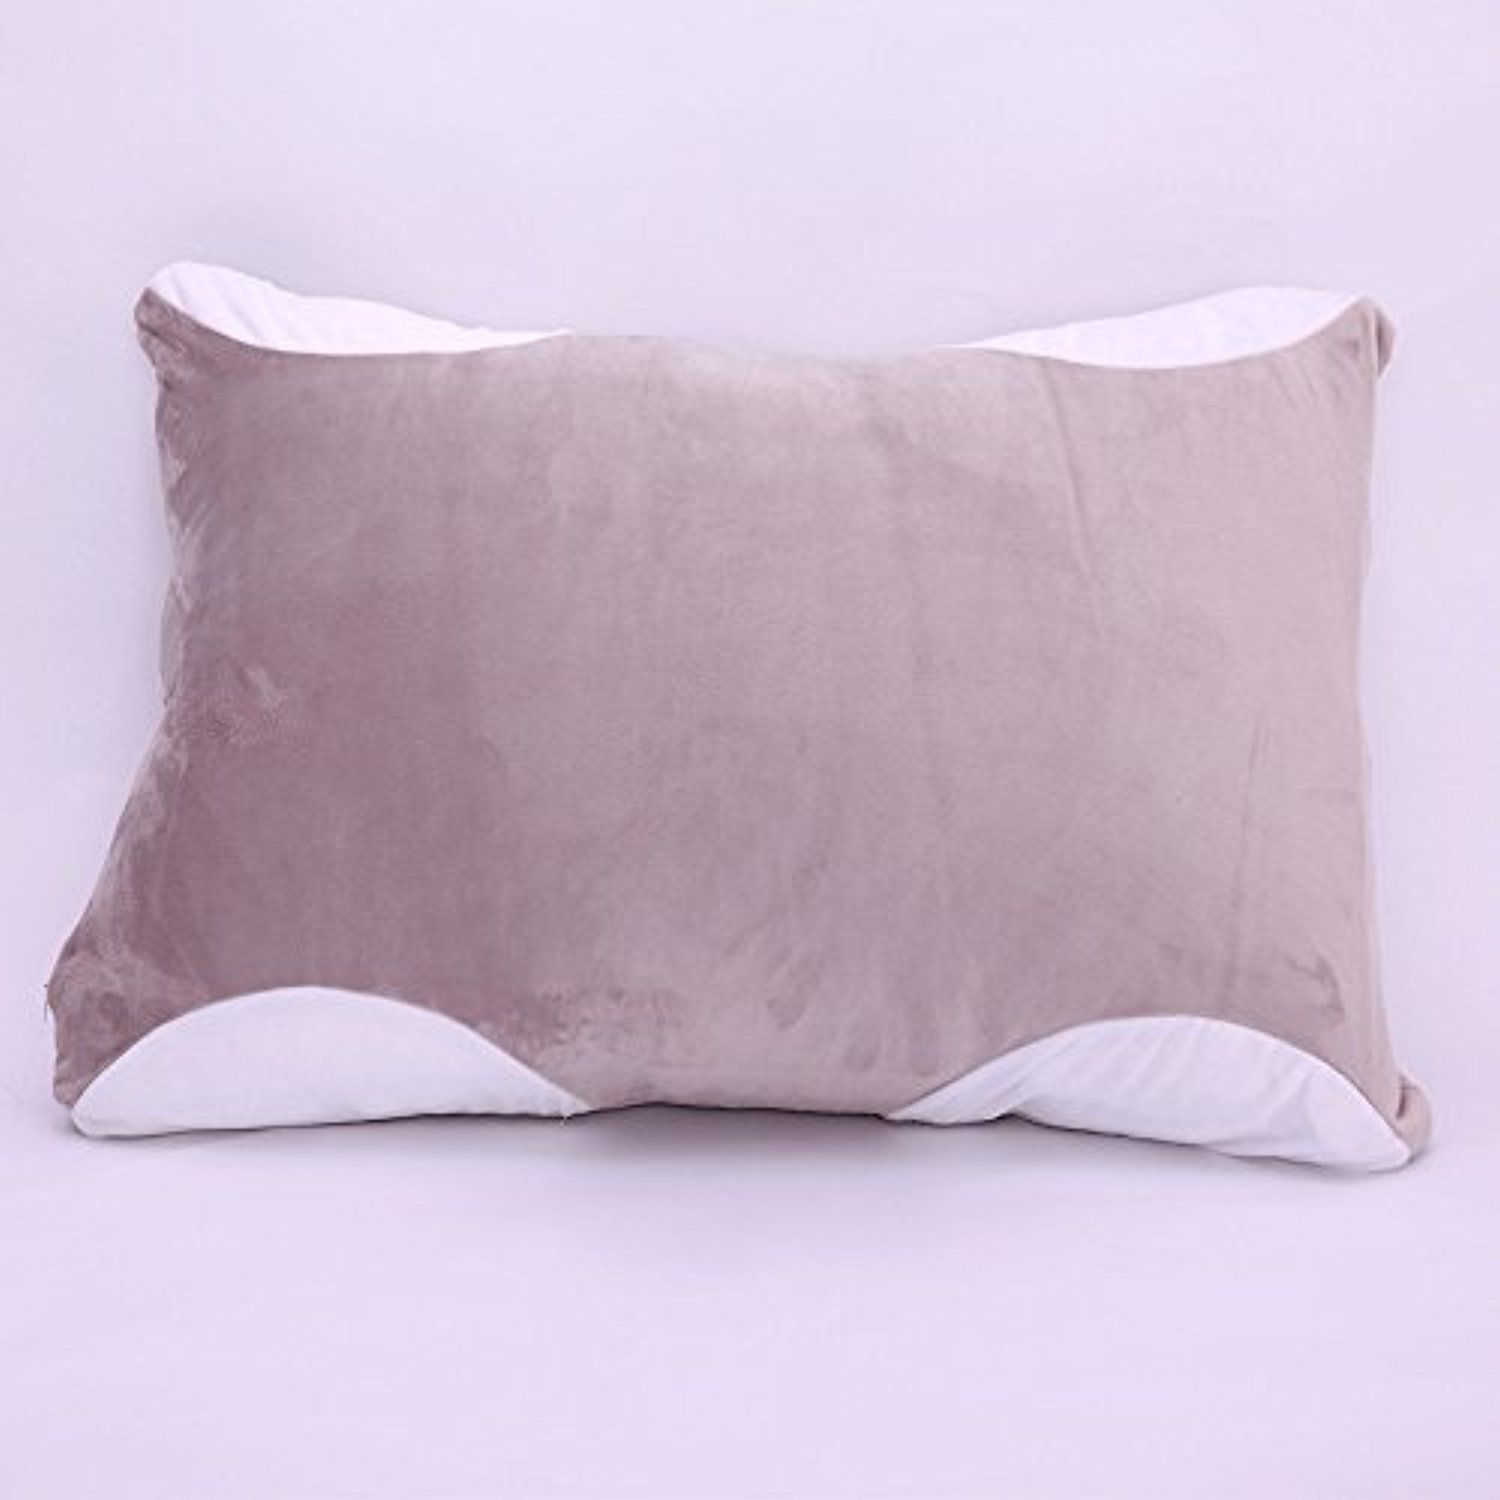 Dust Mite Pillow Covers Captivating Btwzm 2 Pack Luxury Zippered Queen Pillow Protector Covers  Unique Decorating Inspiration